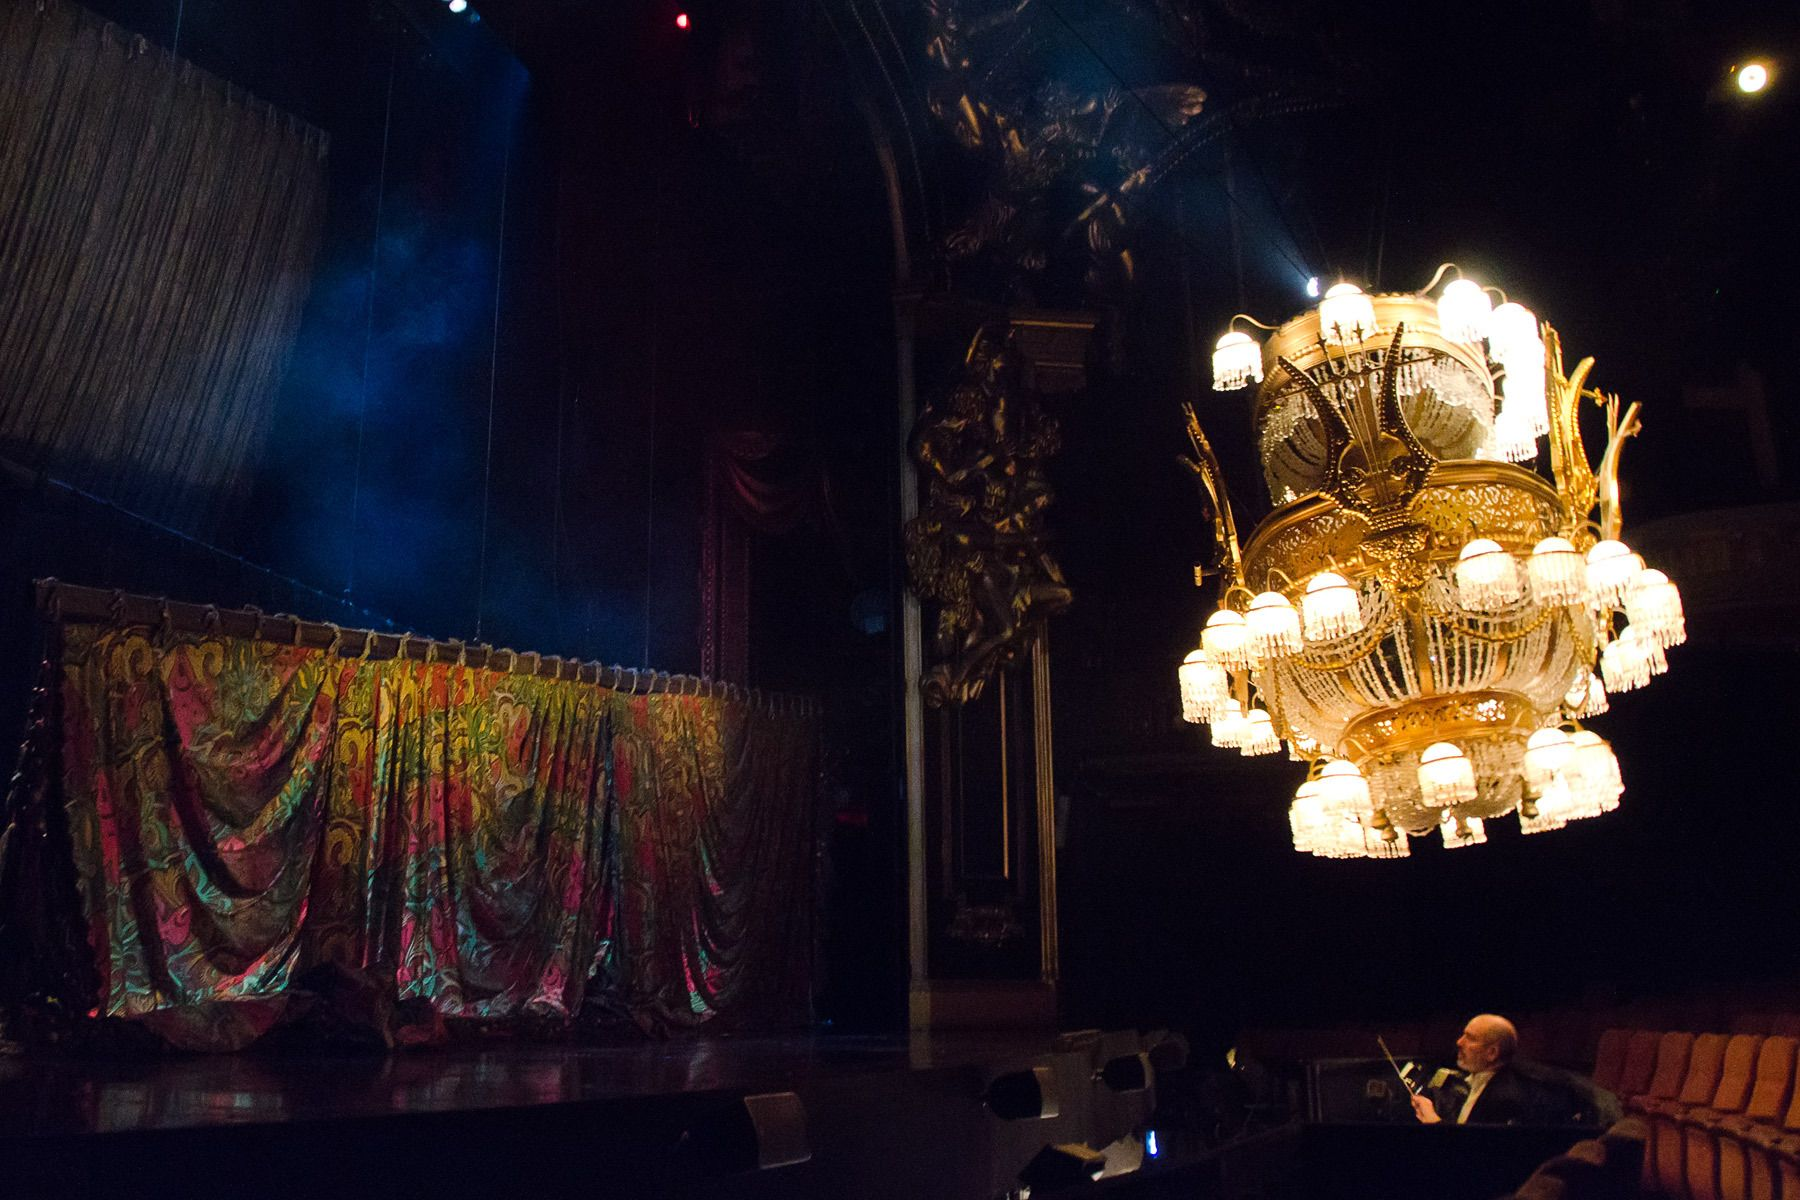 The chandelier rises in the Broadway production of THE PHANTOM OF THE OPERA.